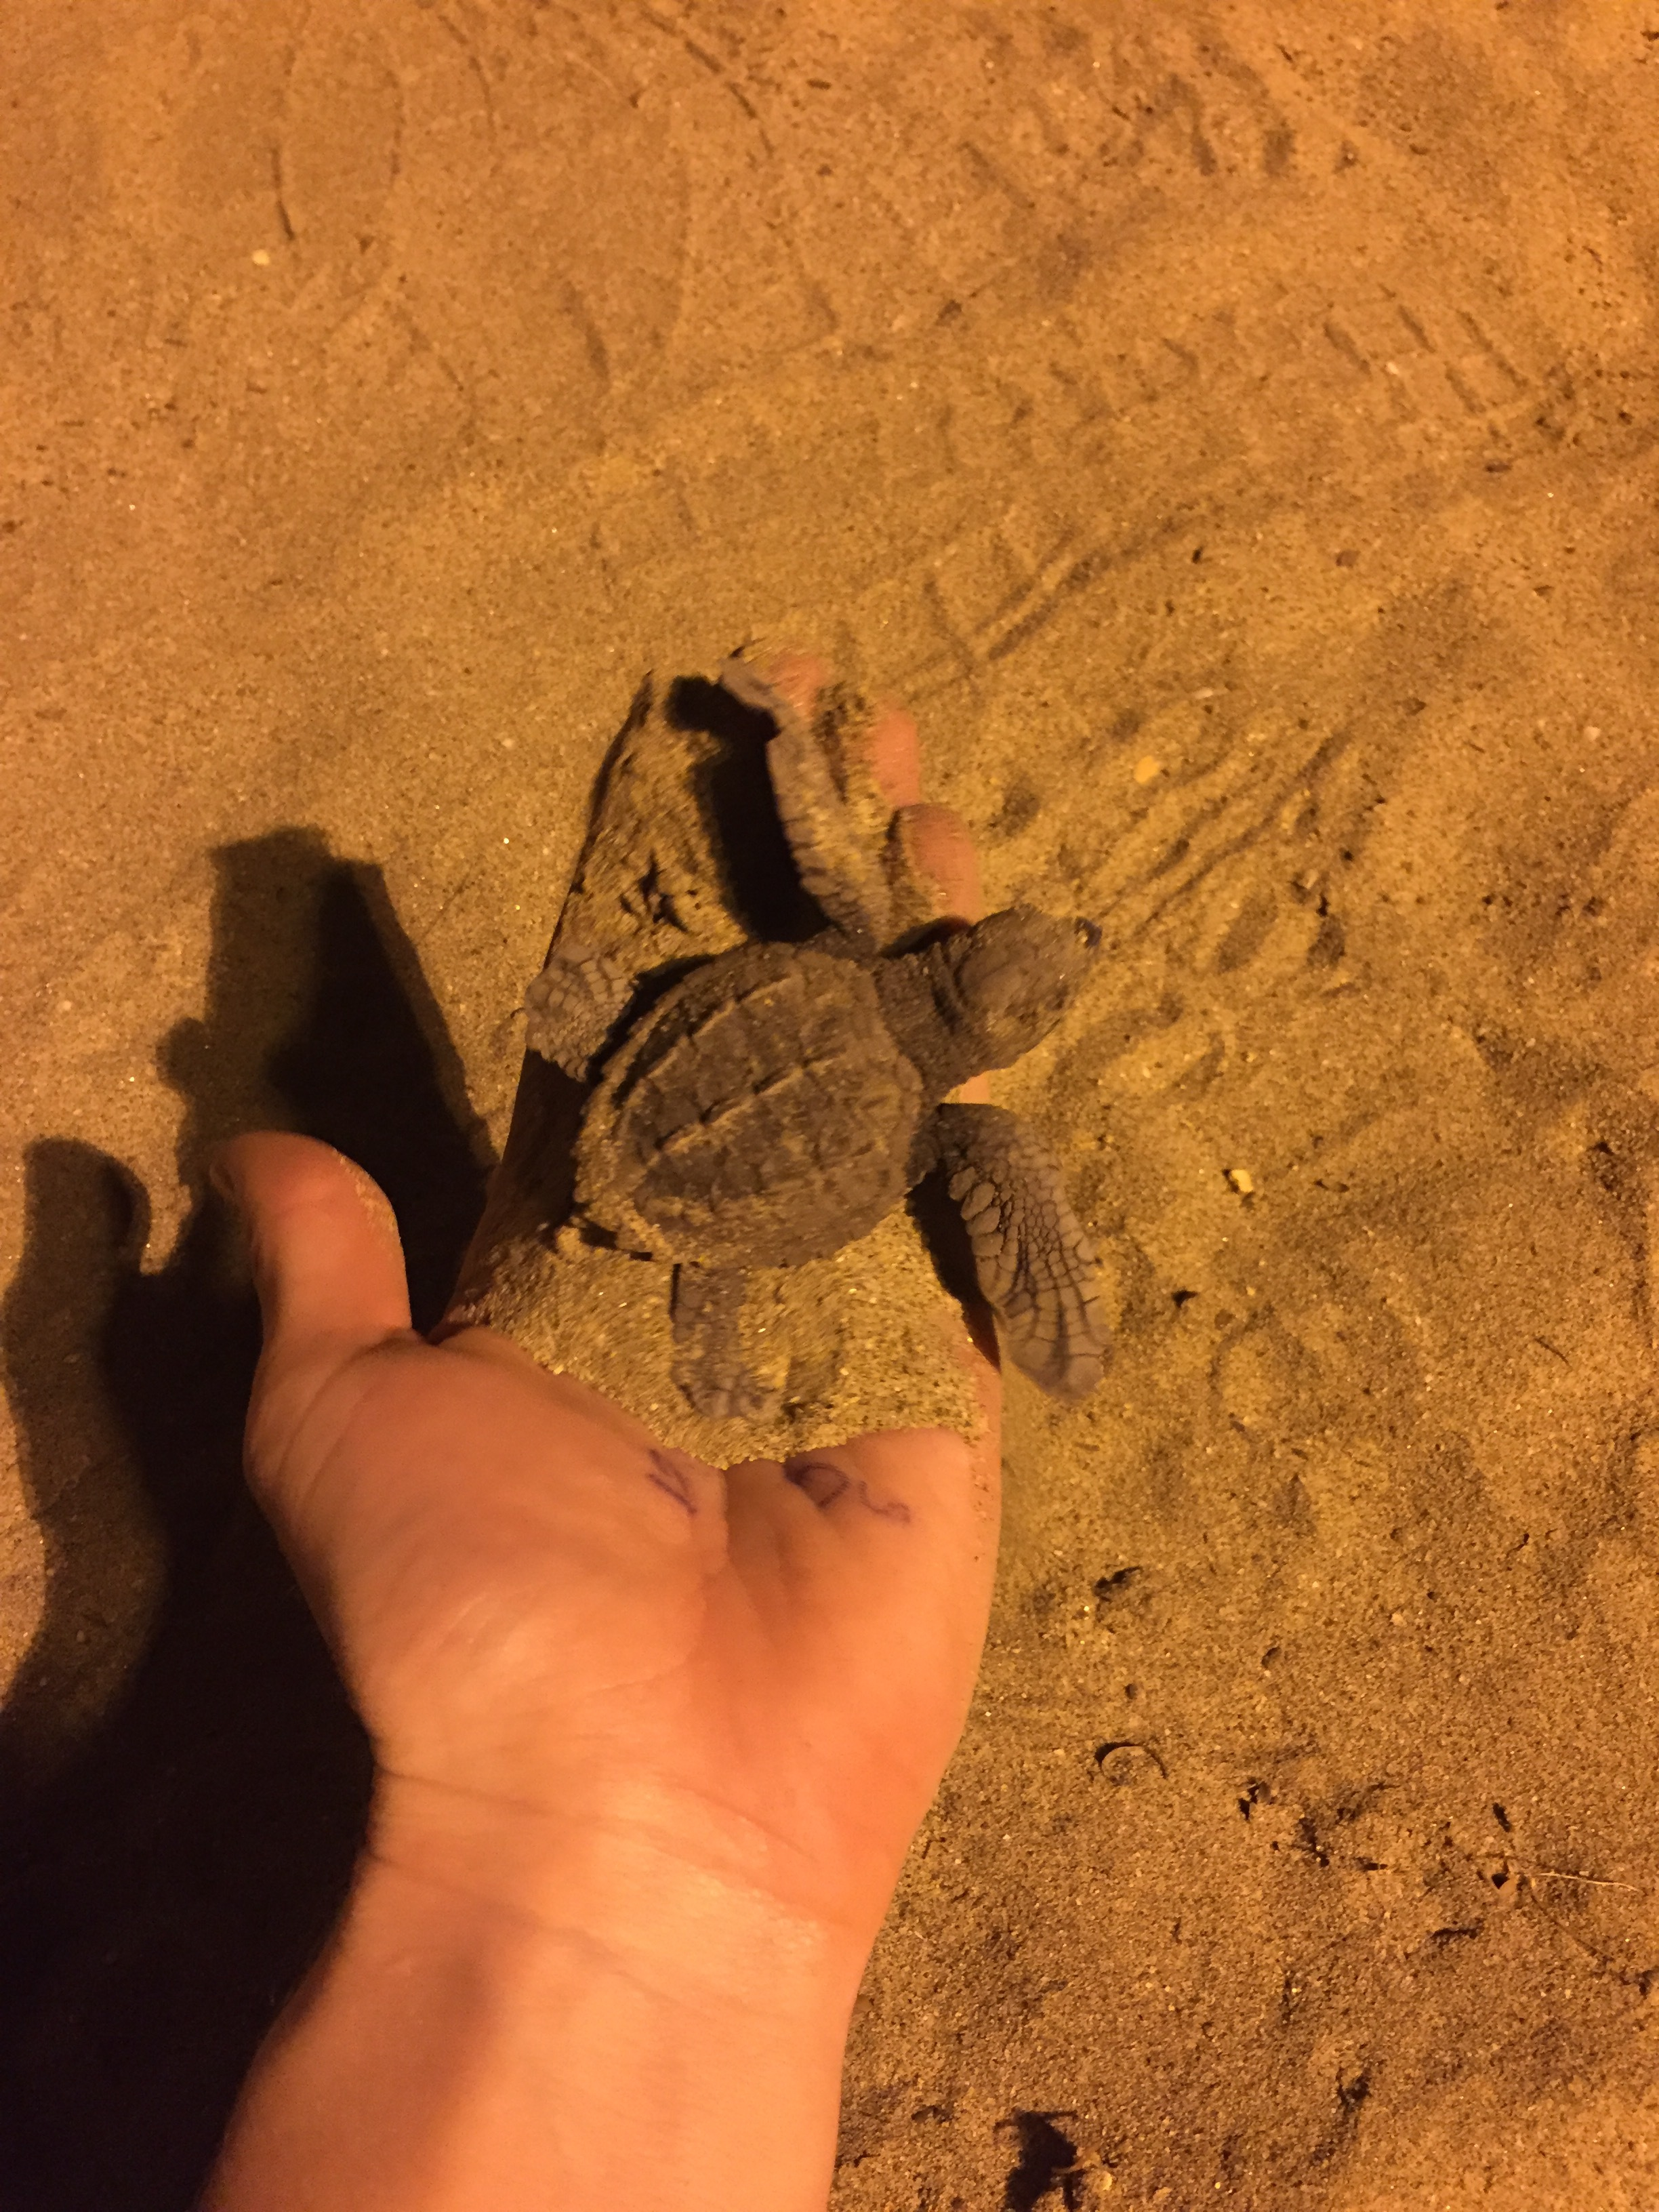 baby turtles that hatched and we took to the sea happiest life moment ever.